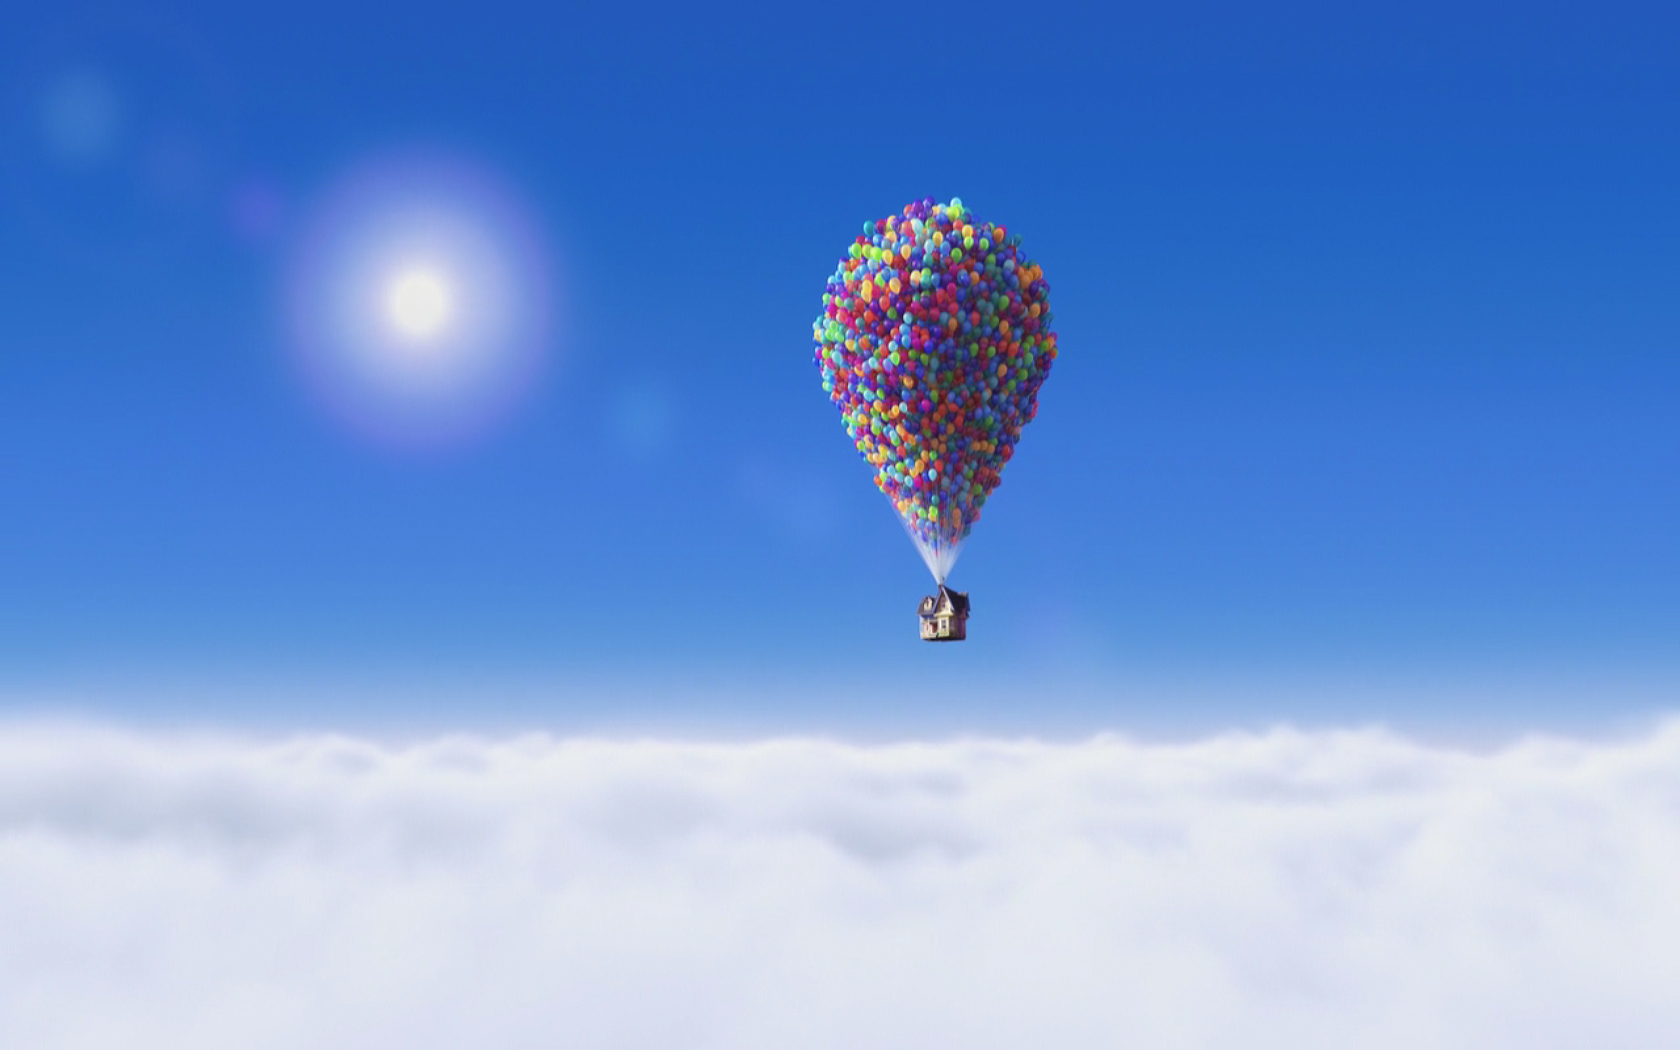 Pixar Up Balloons   Viewing Gallery 1680x1050